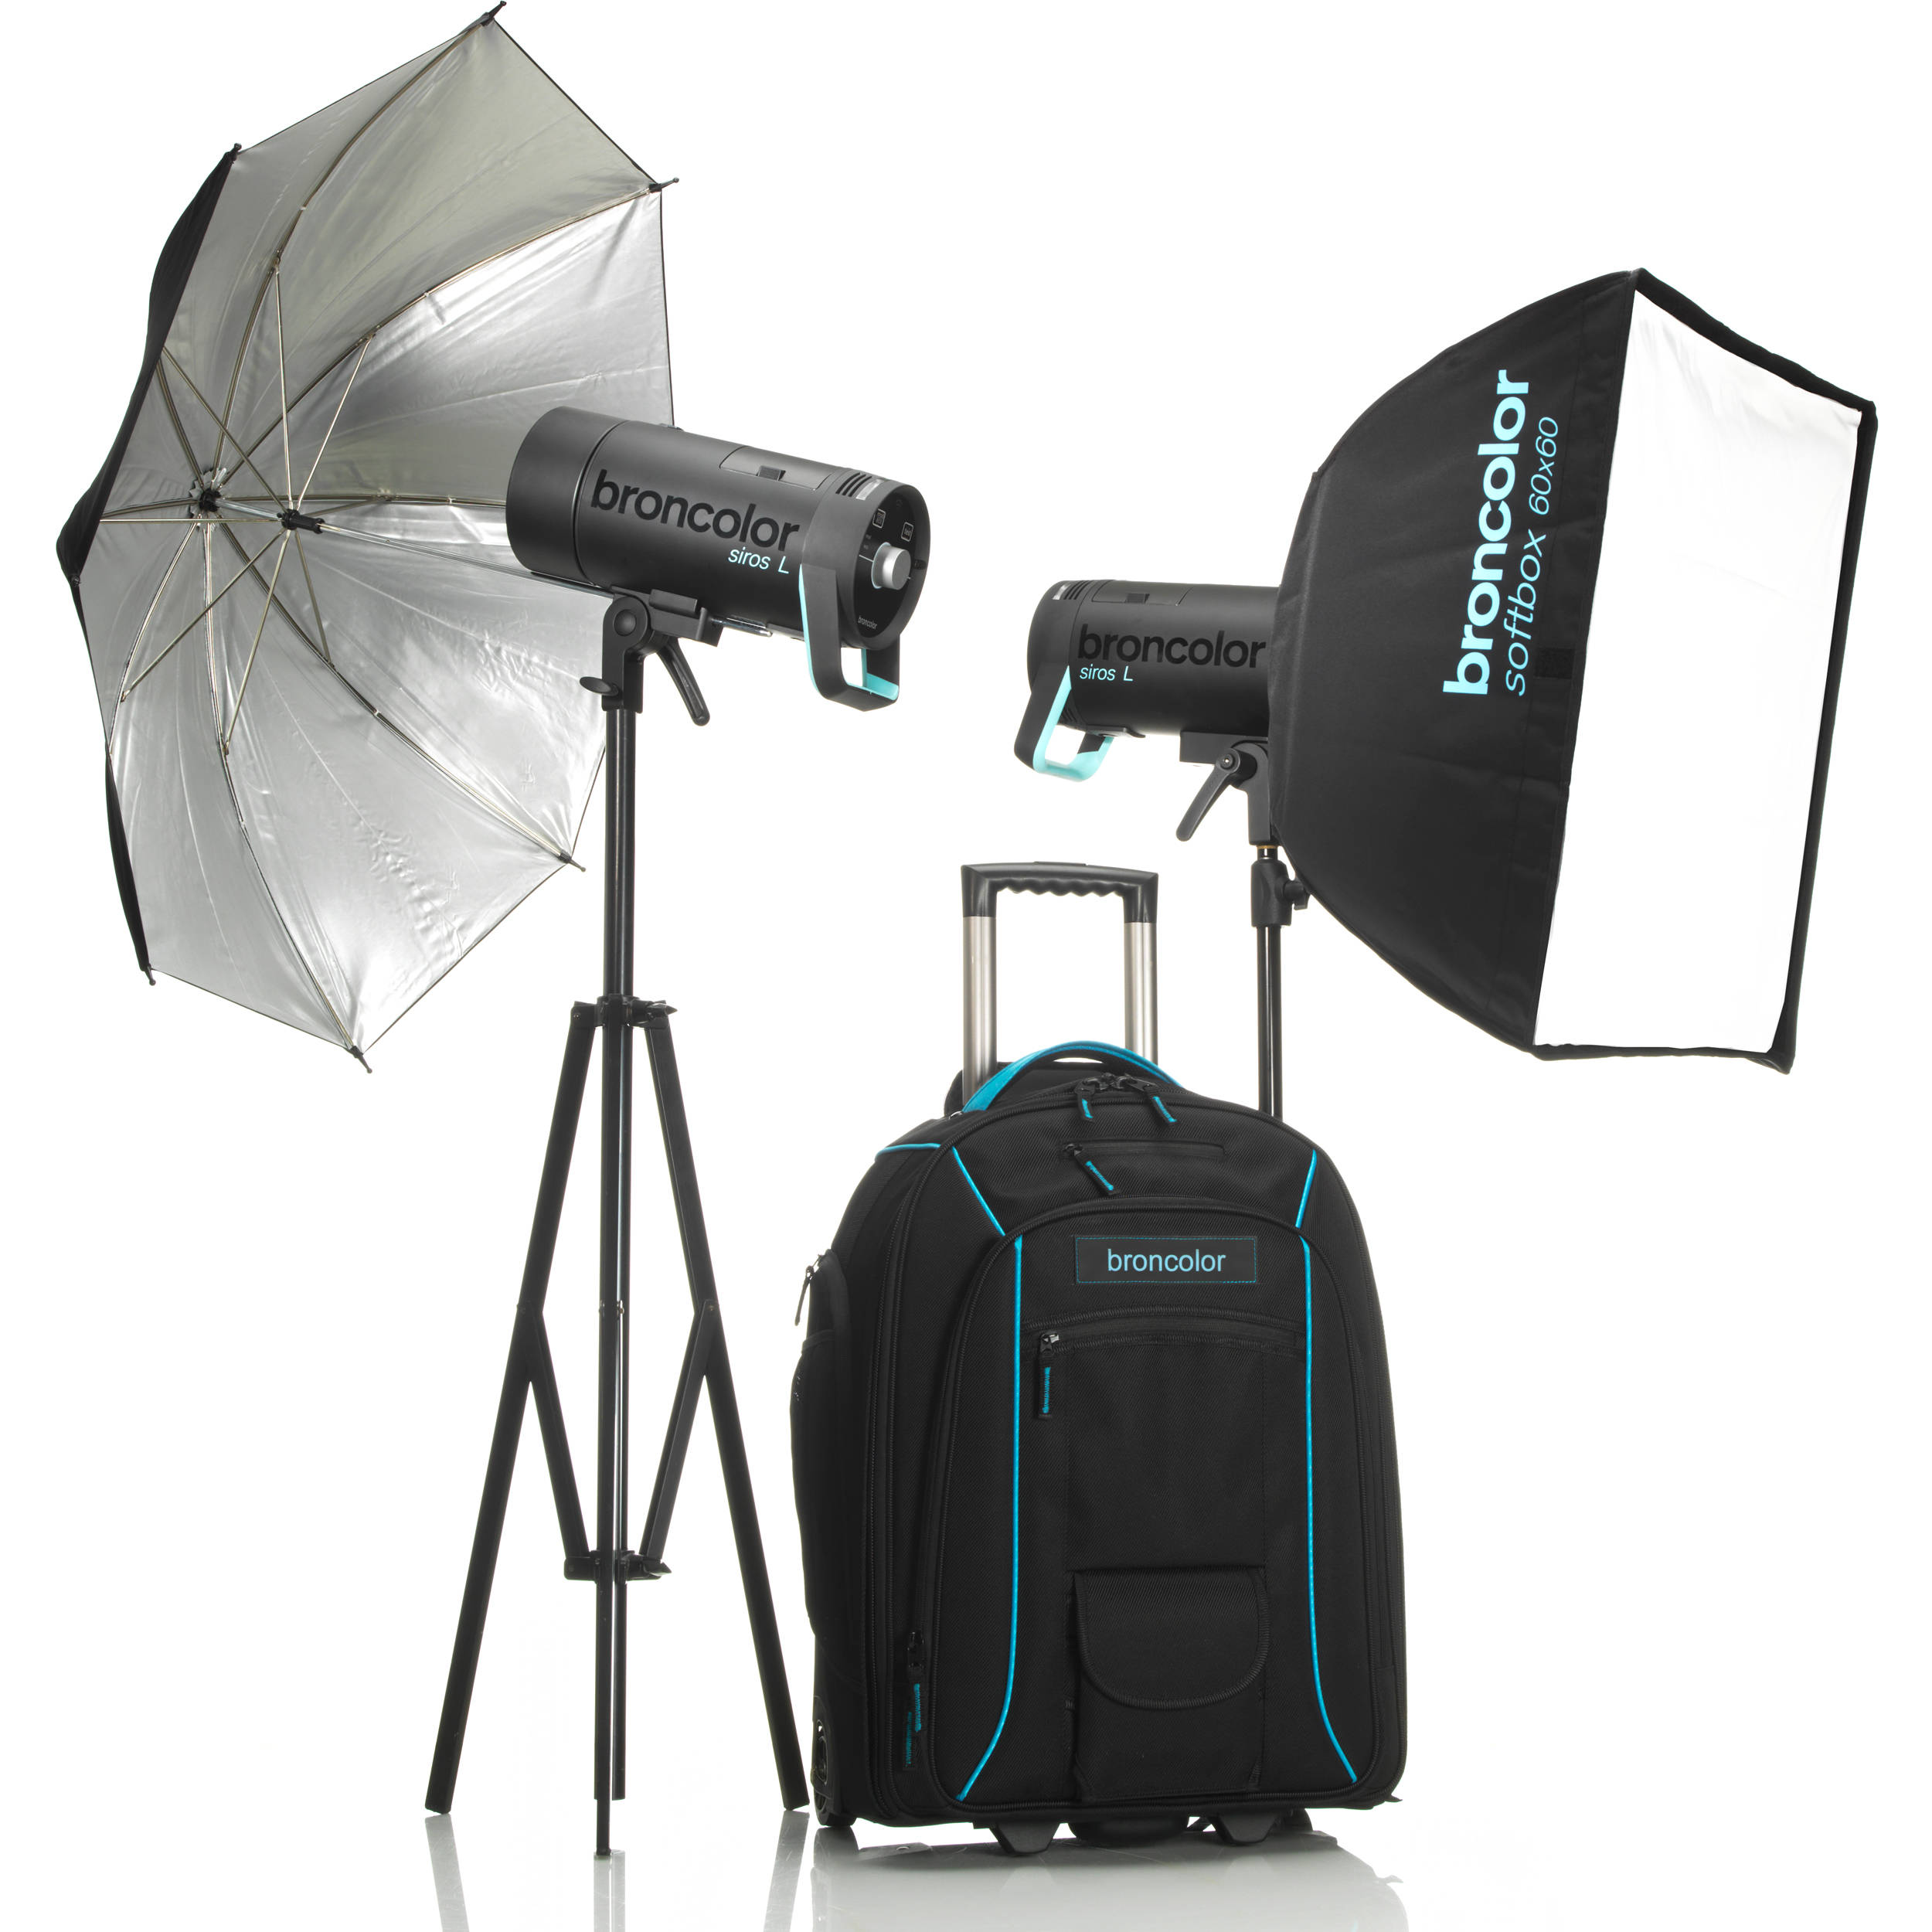 Broncolor siros l 400ws battery powered 2 light b 3175007 bh battery powered 2 light outdoor kit 2 stand s not included aloadofball Gallery